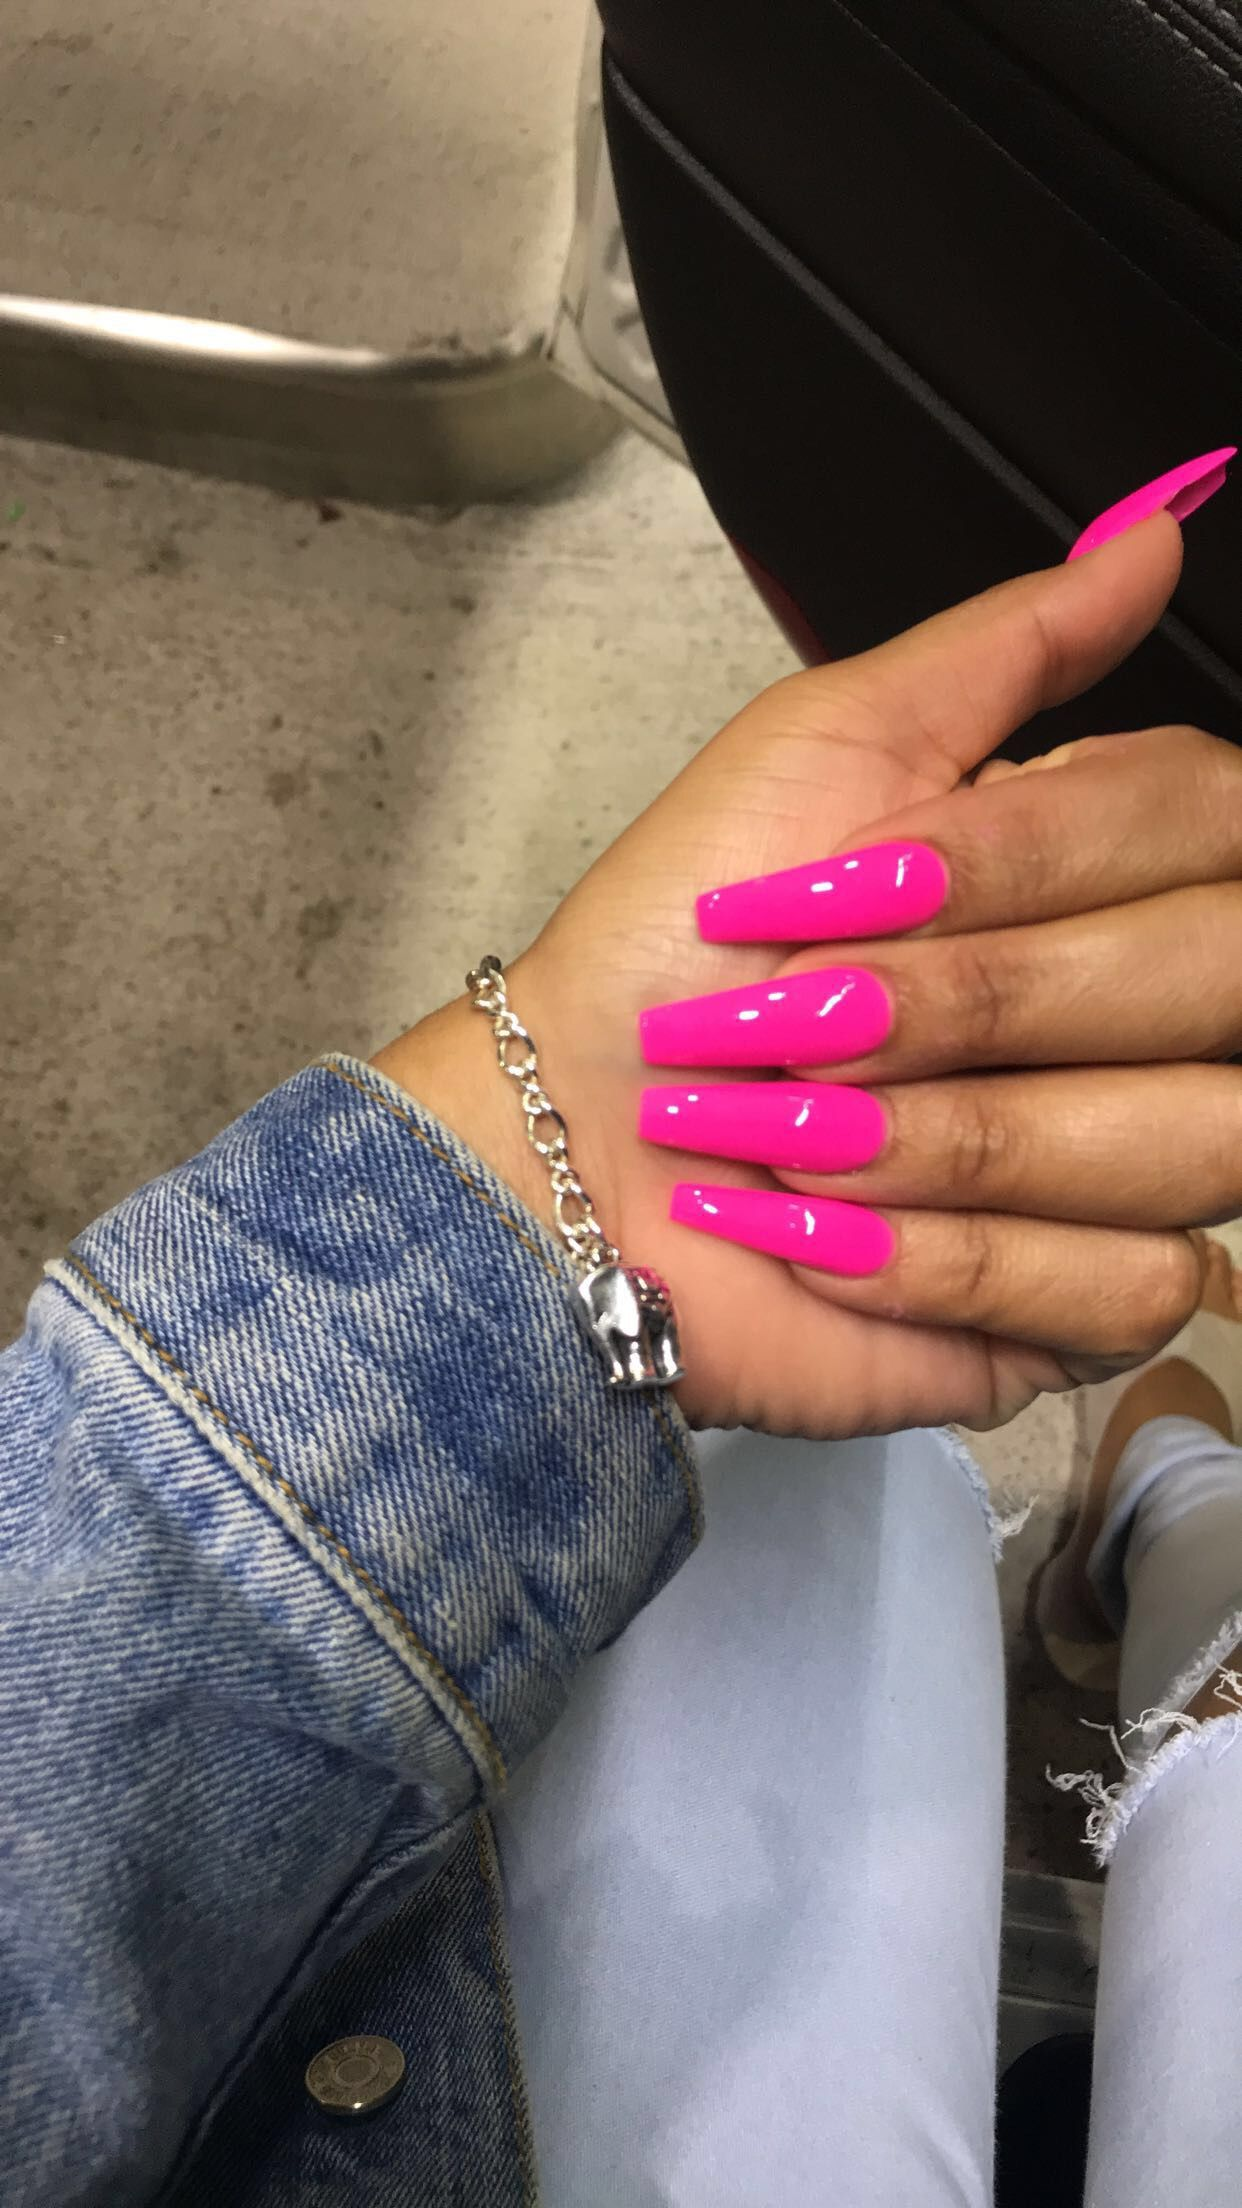 Coffin Nails Barbie Nails Pink Nails Glam Nails Pink Acrylic Nails Pink Nails